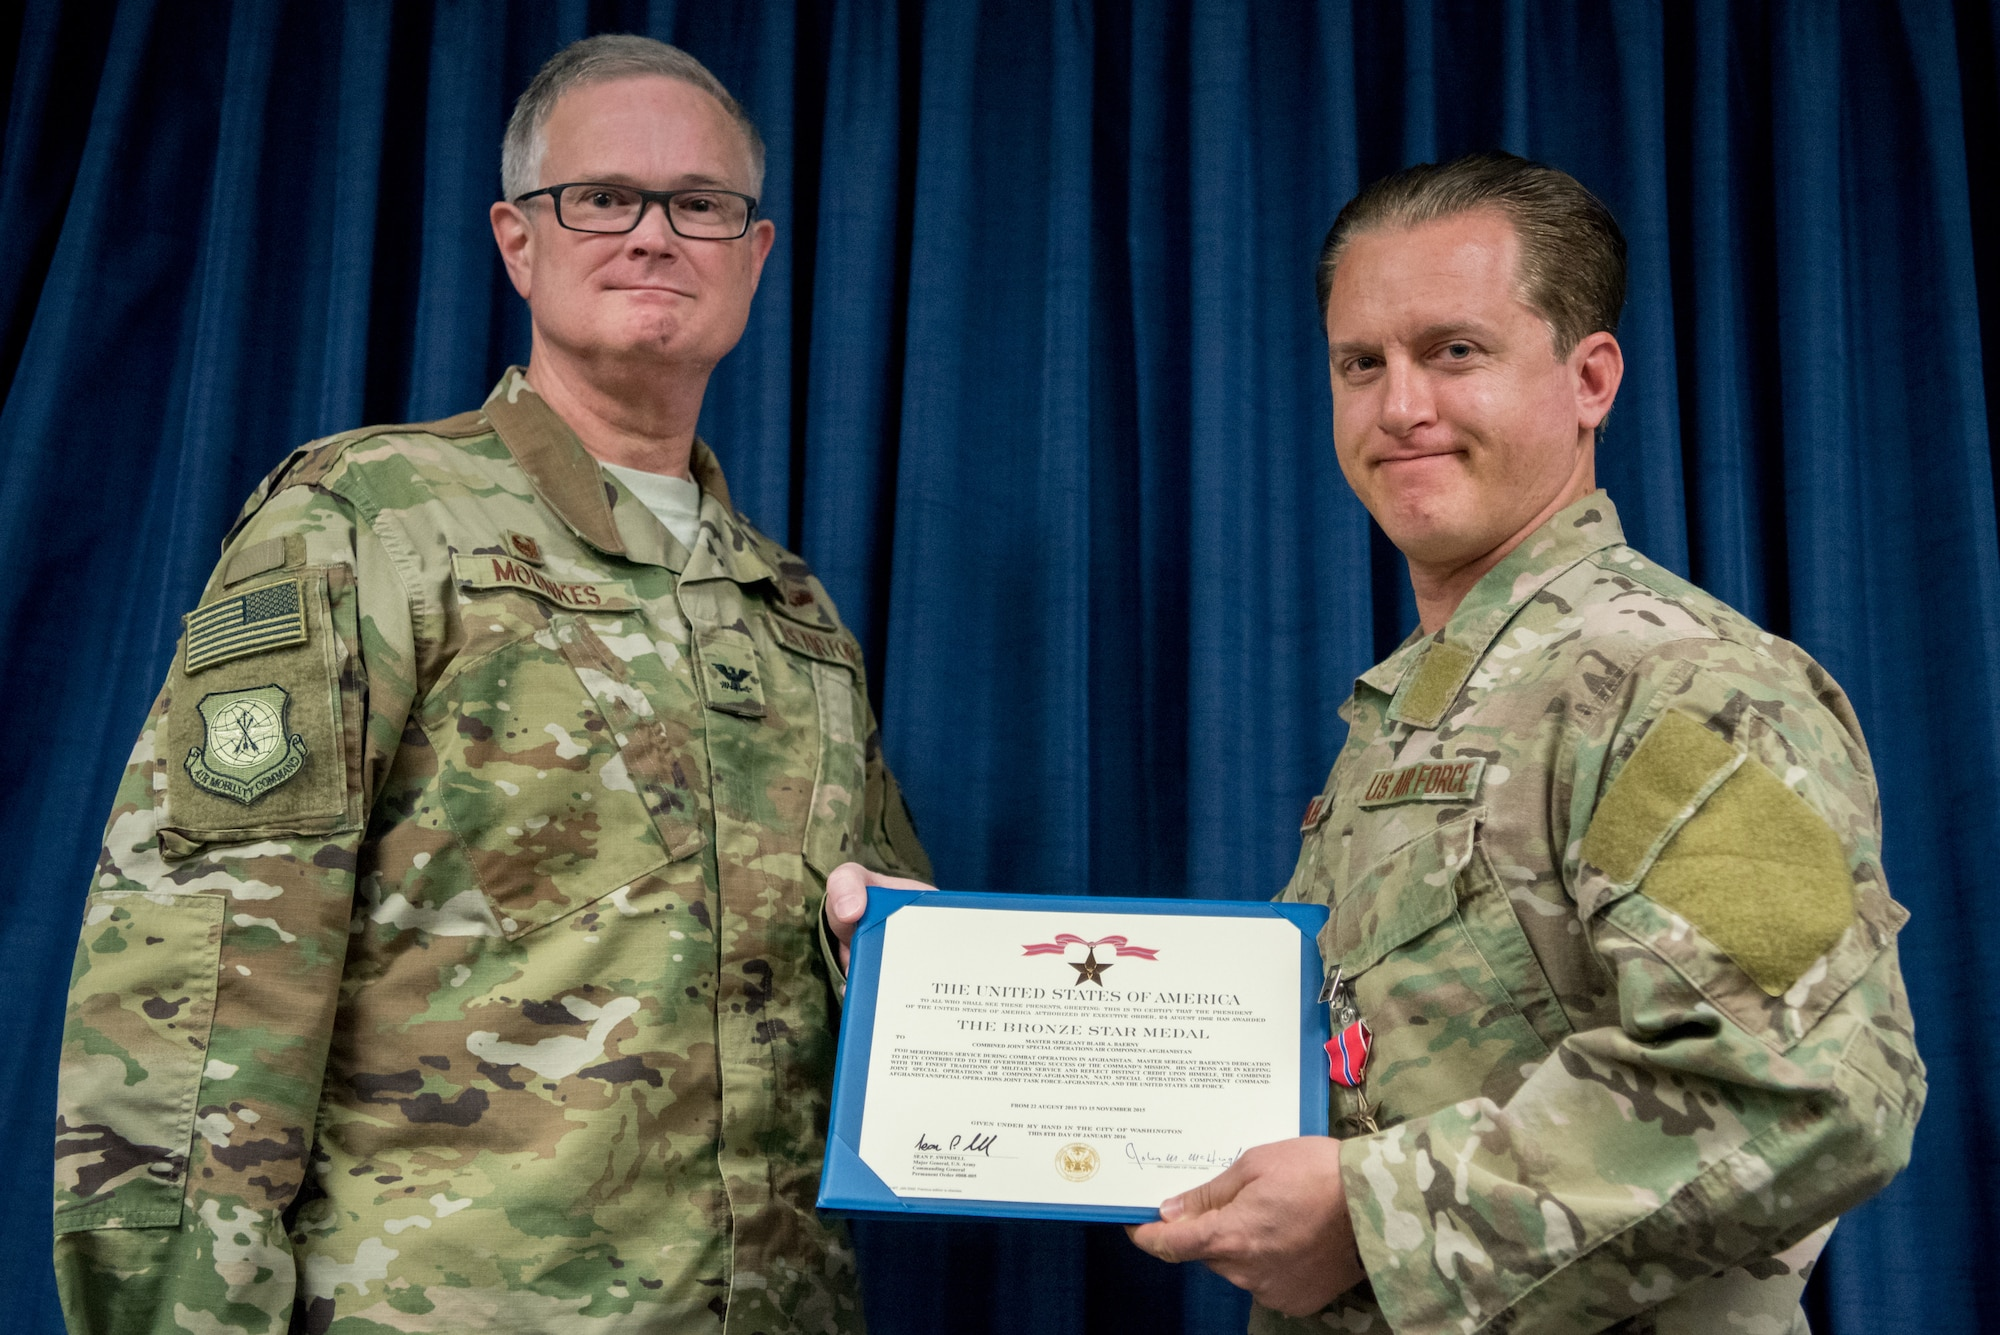 Master Sgt. Blair A. Baerny (right), a pararescueman for the 123rd Airlift Special Tactics Squadron, receives the Bronze Star Medal from Col. David Mounkes, commander of the 123rd Airlift Wing, at the Kentucky Air National Guard Base in Louisville, Ky., Nov. 17, 2018. Baerny distinguished himself for meritorious service with his participation in Operation Freedom's Sentinel from Aug. 22 to Nov. 15, 2015. His leadership ensured effective combat search and rescue coverage for all special operations assets throughout Afghanistan, mitigating risk and maintaining the safety of more than 1,600 personnel. (U.S. Air National Guard photo by Staff Sgt. Joshua Horton)